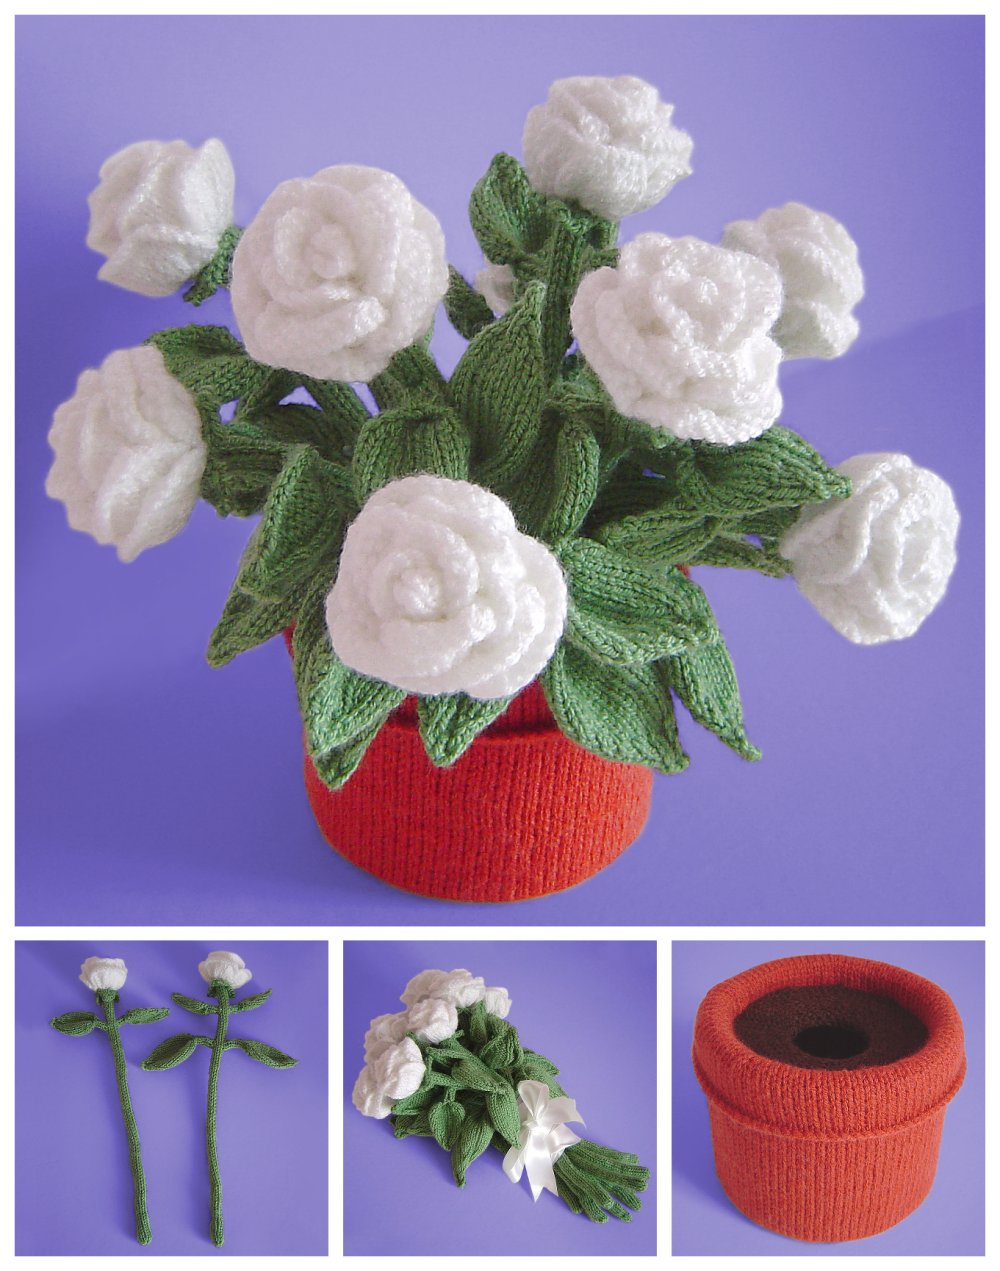 Knitted Bouquet and Houseplant